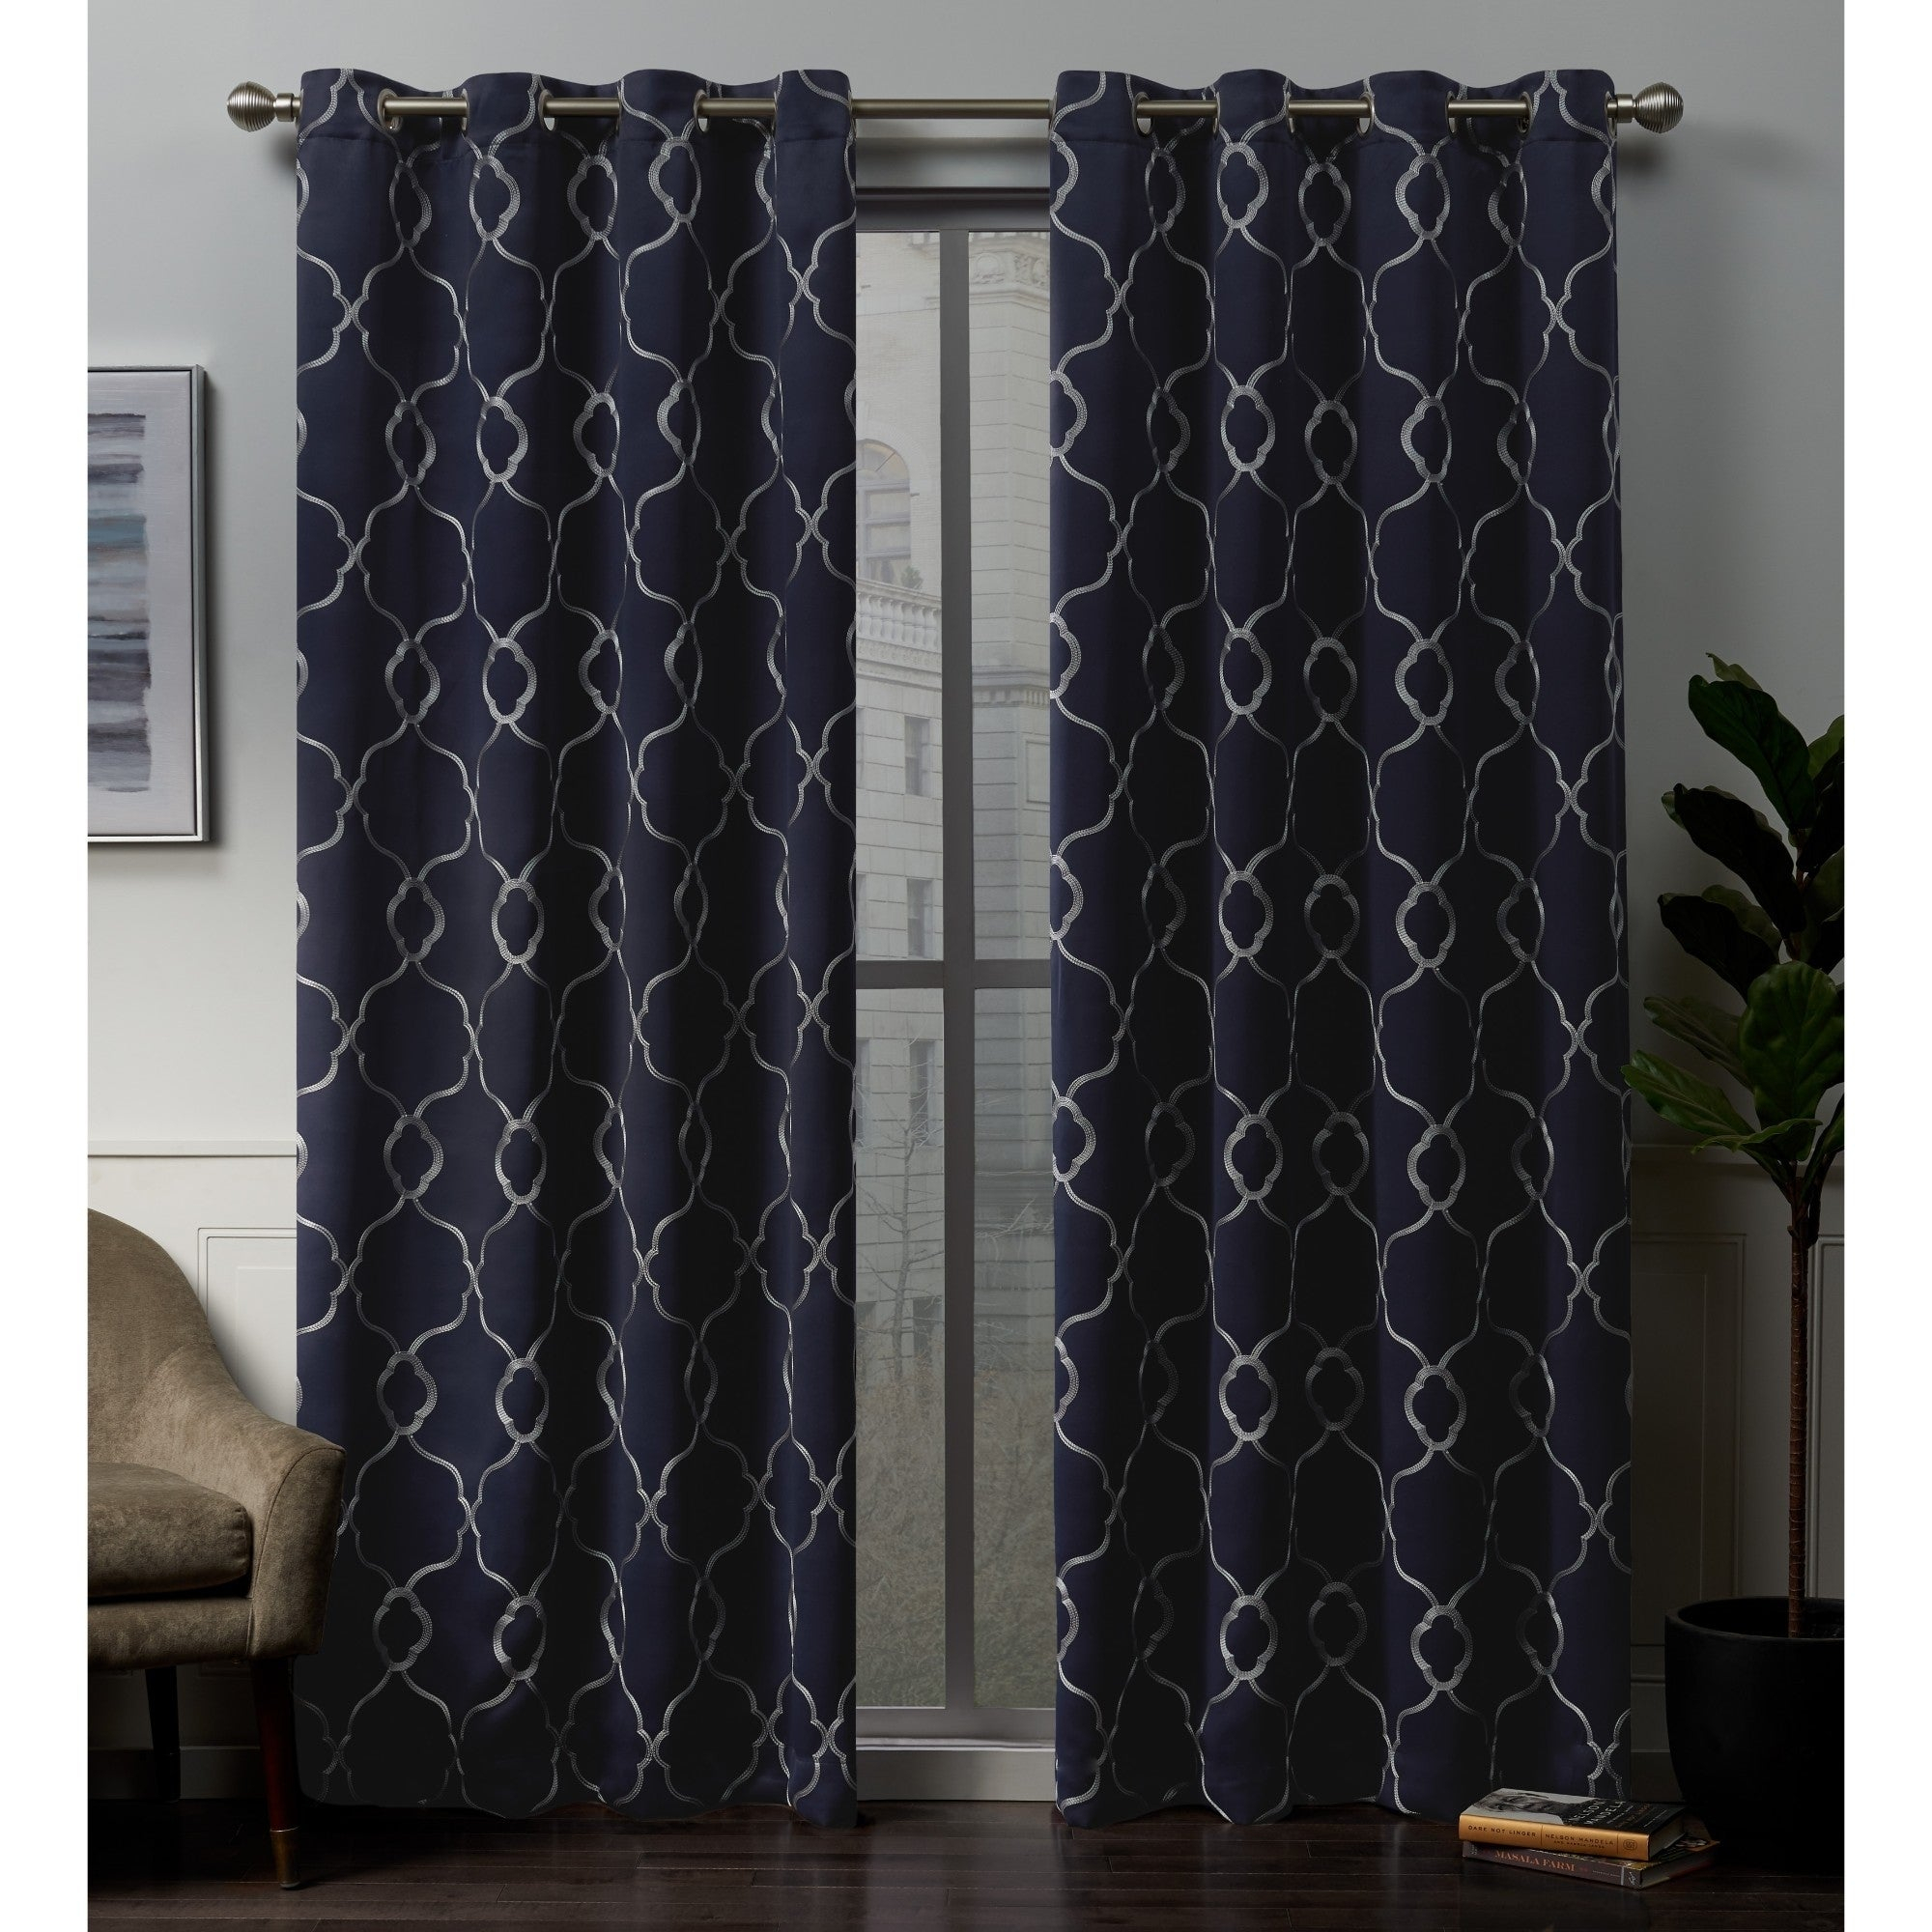 Ati Home Belmont Woven Blackout Grommet Top Curtain Panel Pair Inside Sateen Woven Blackout Curtain Panel Pairs With Pinch Pleat Top (View 3 of 20)